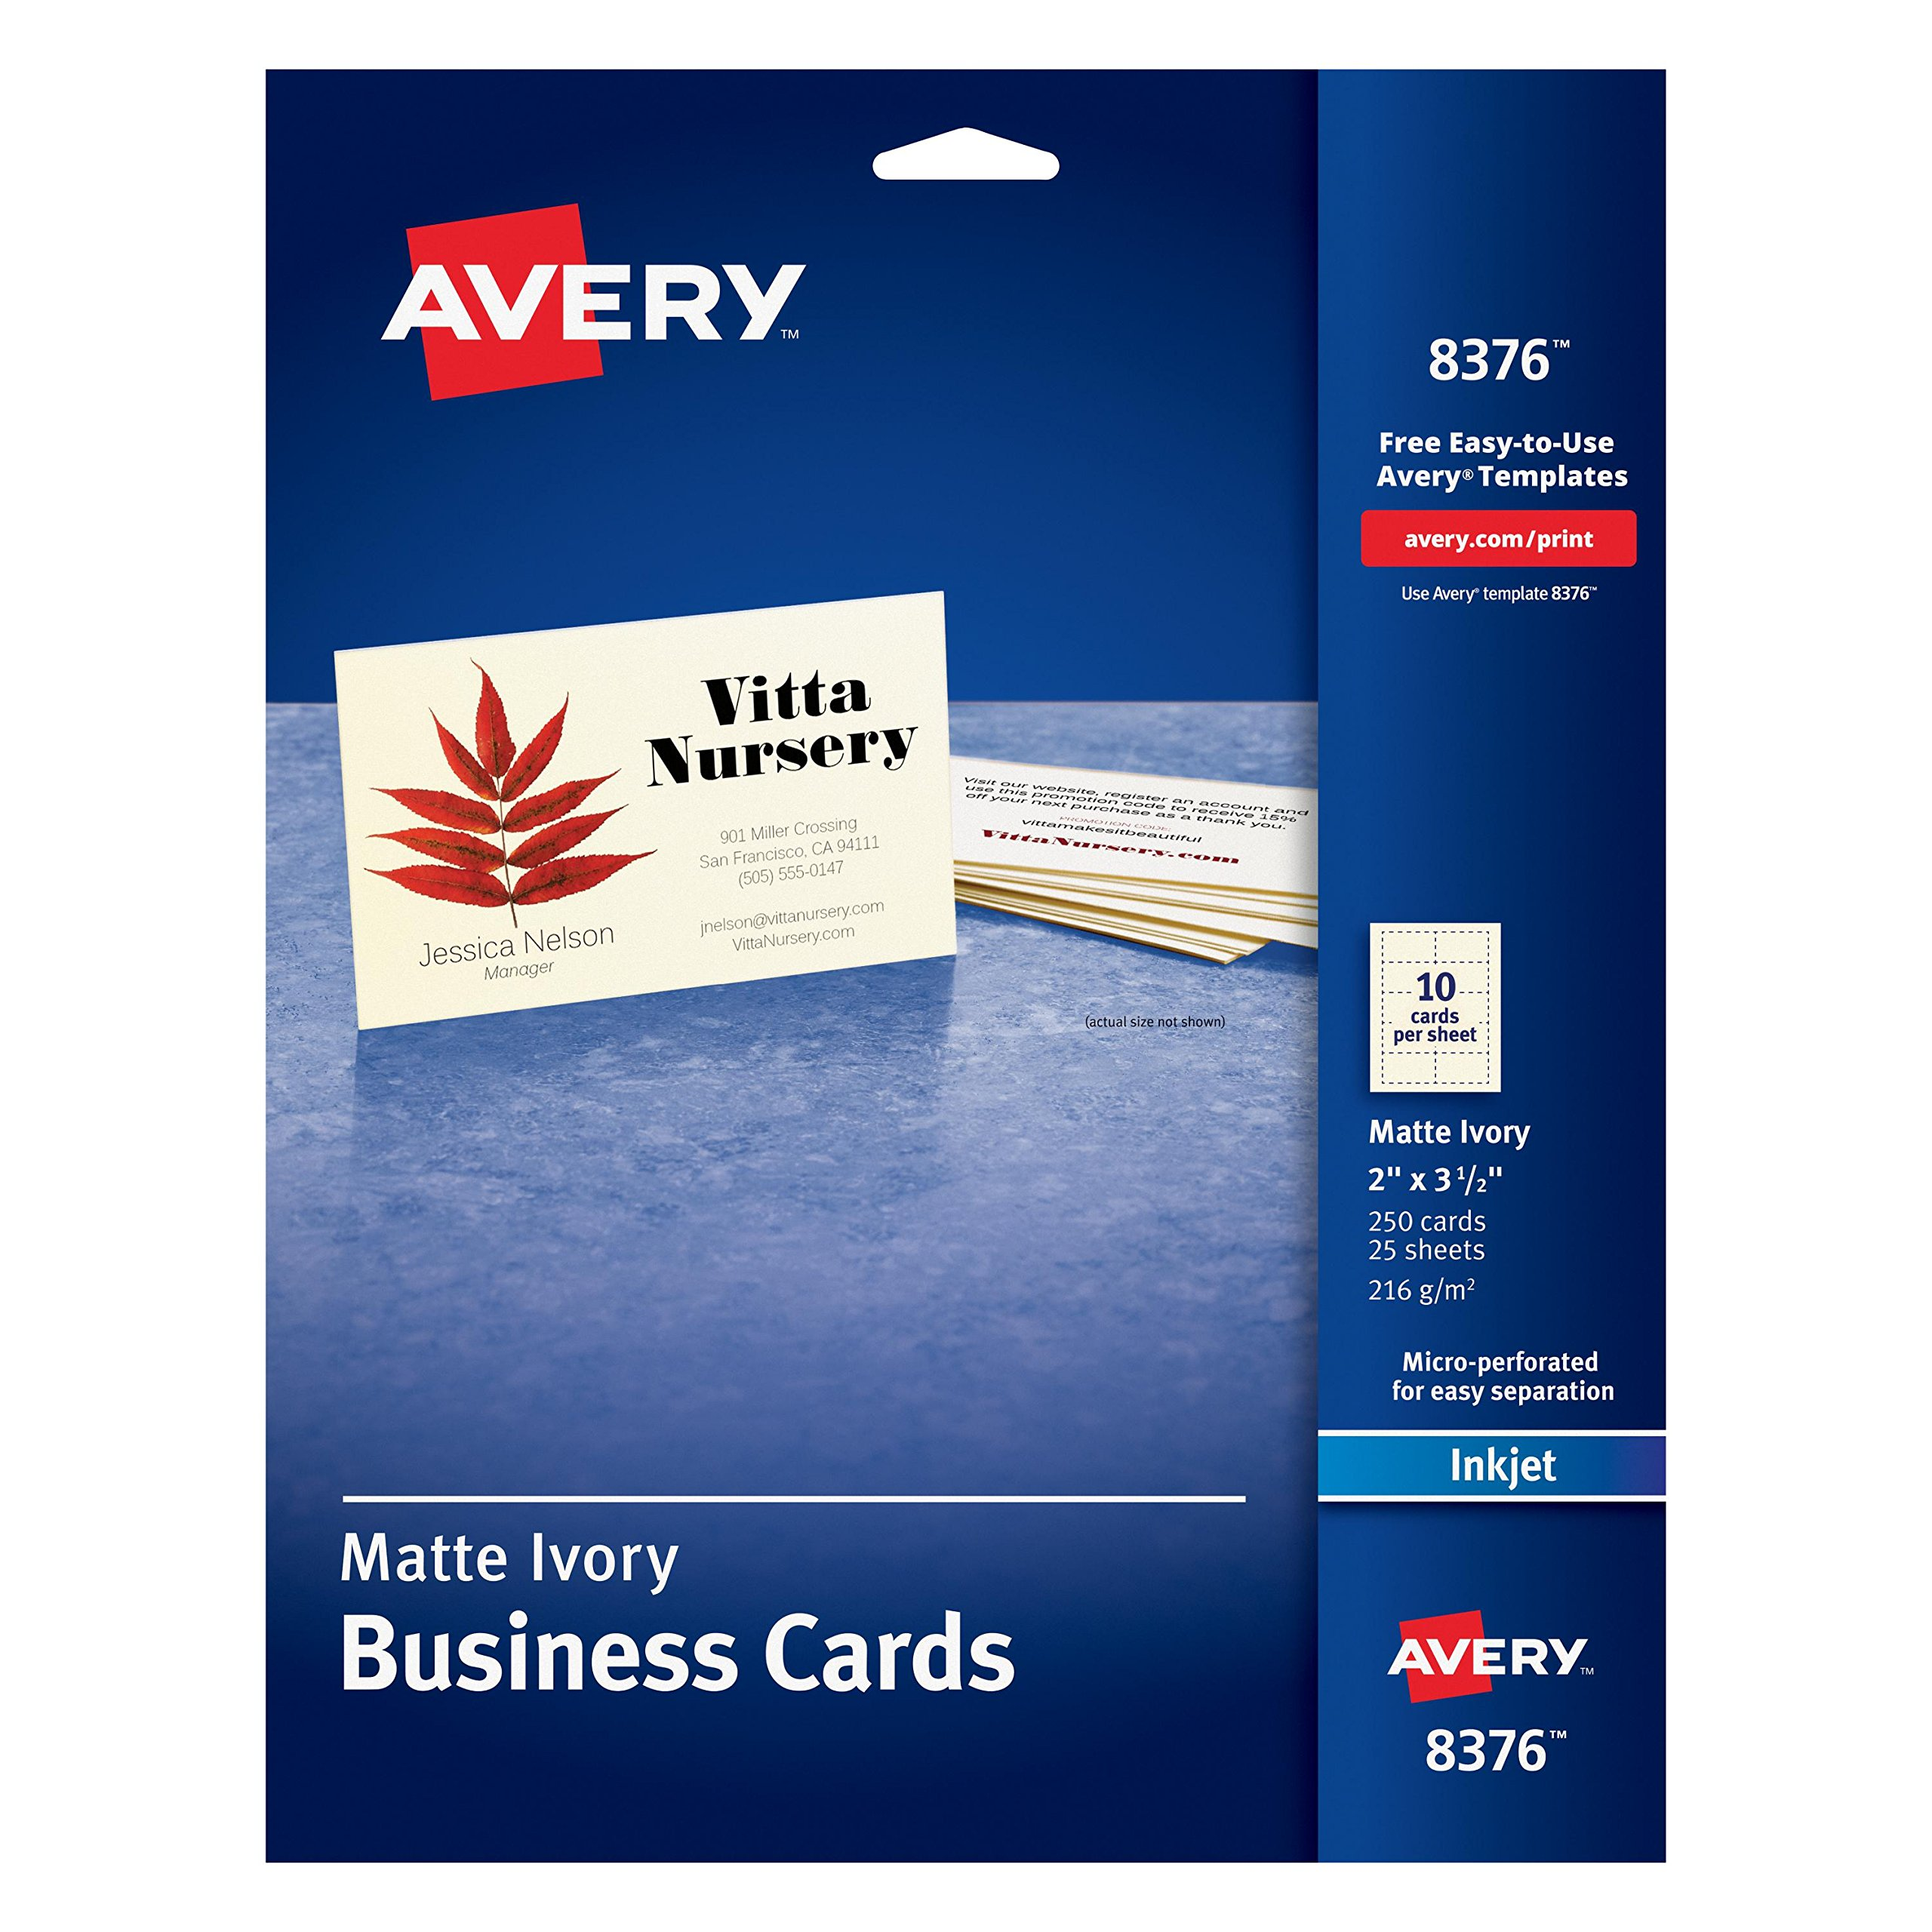 Cheap momo business cards find momo business cards deals on line at get quotations avery 2 x 35 ink jet business cards colourmoves